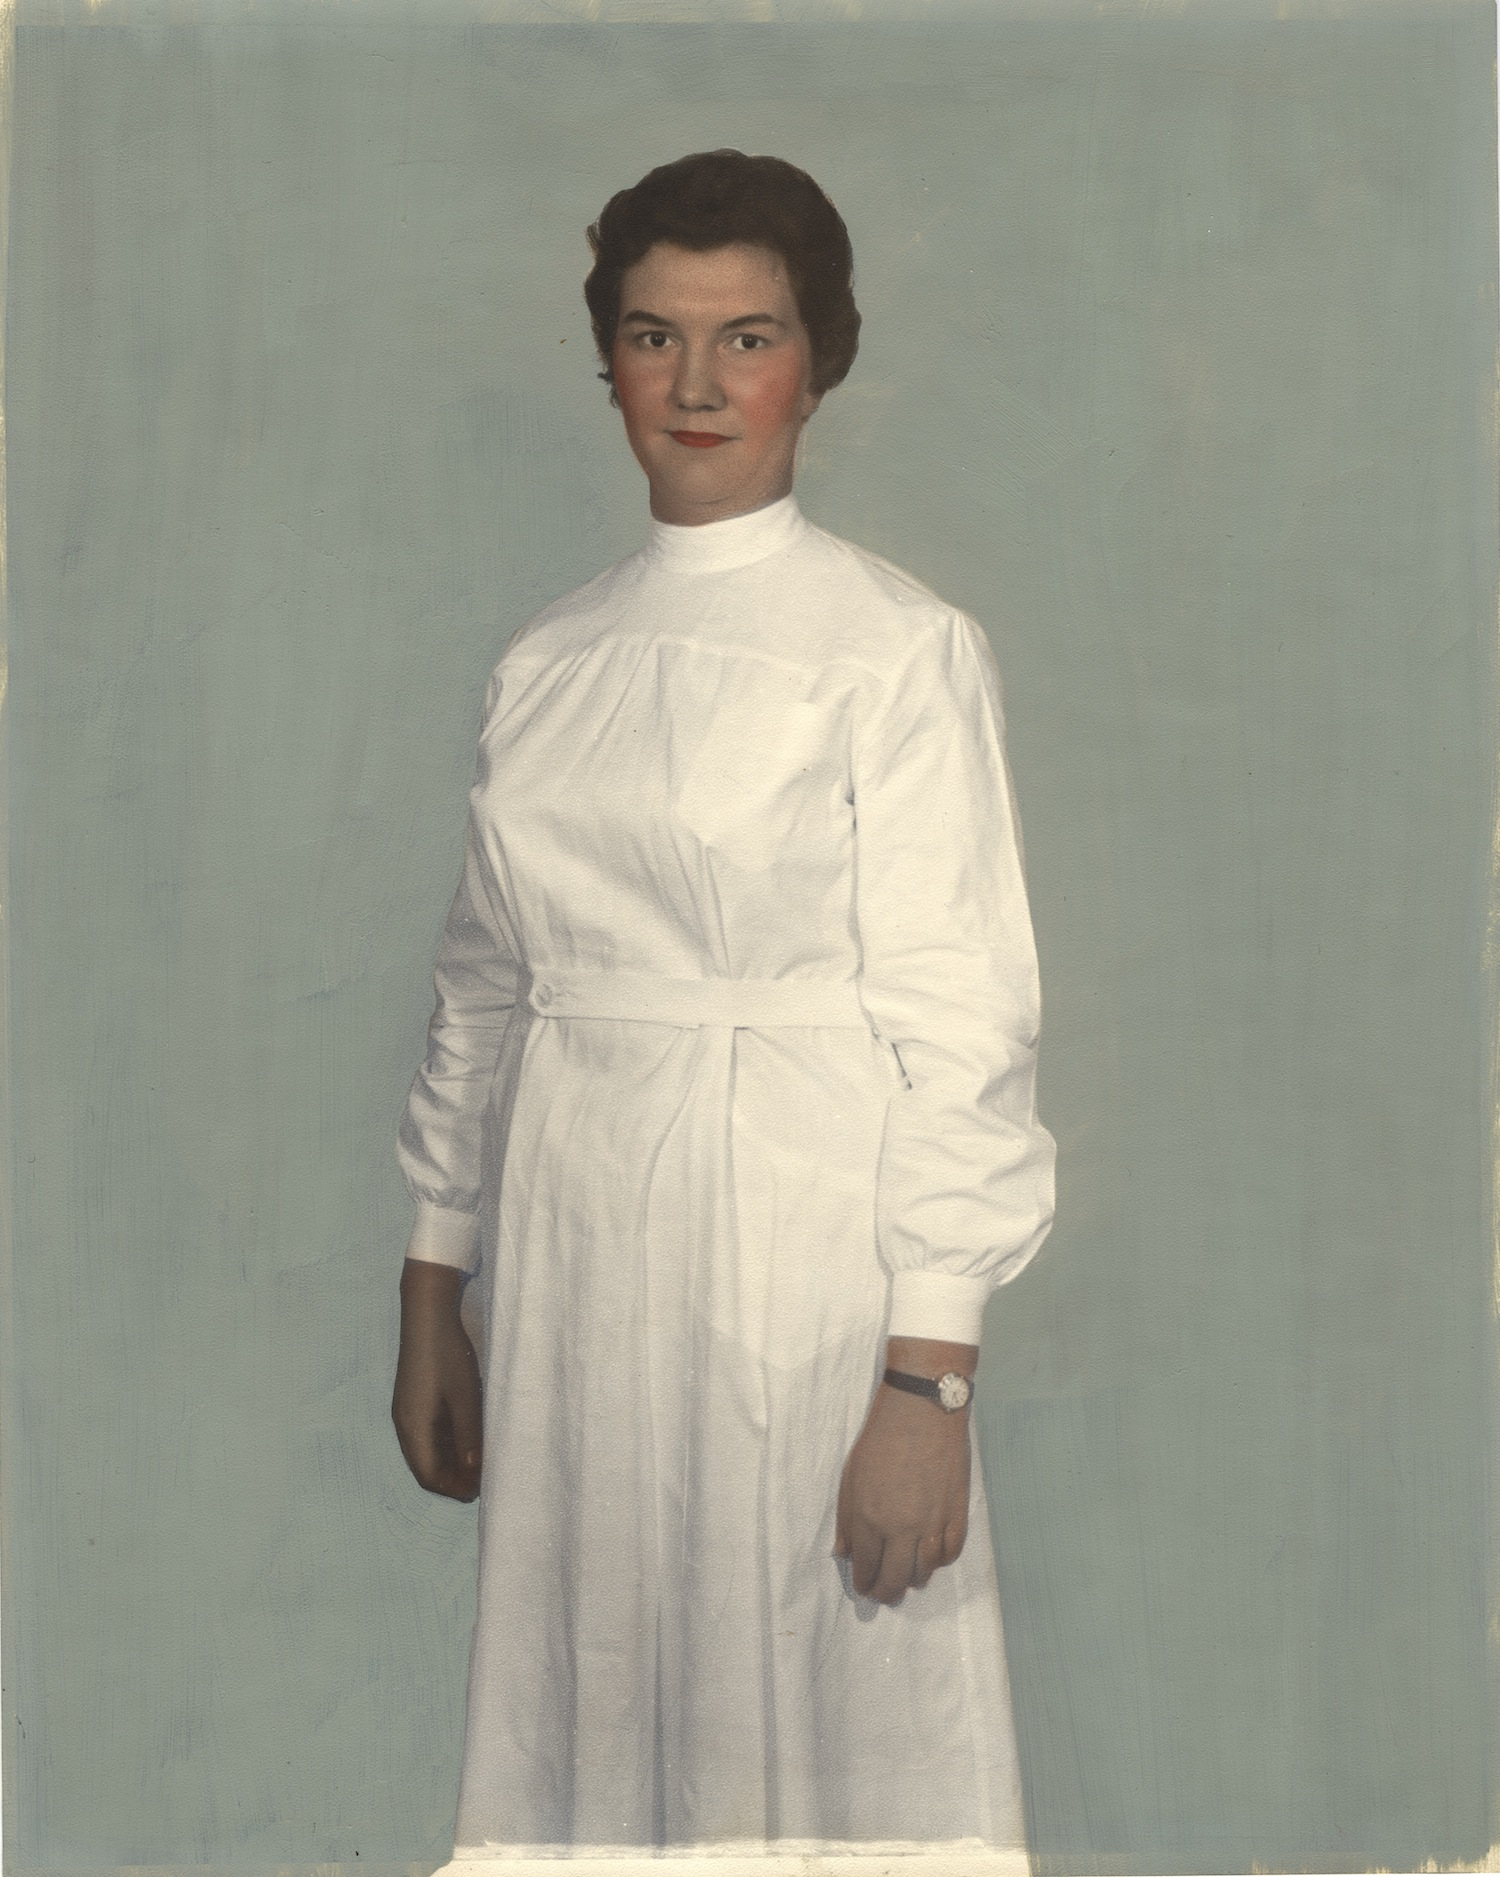 Nurse wearing uniform from Luxembourg